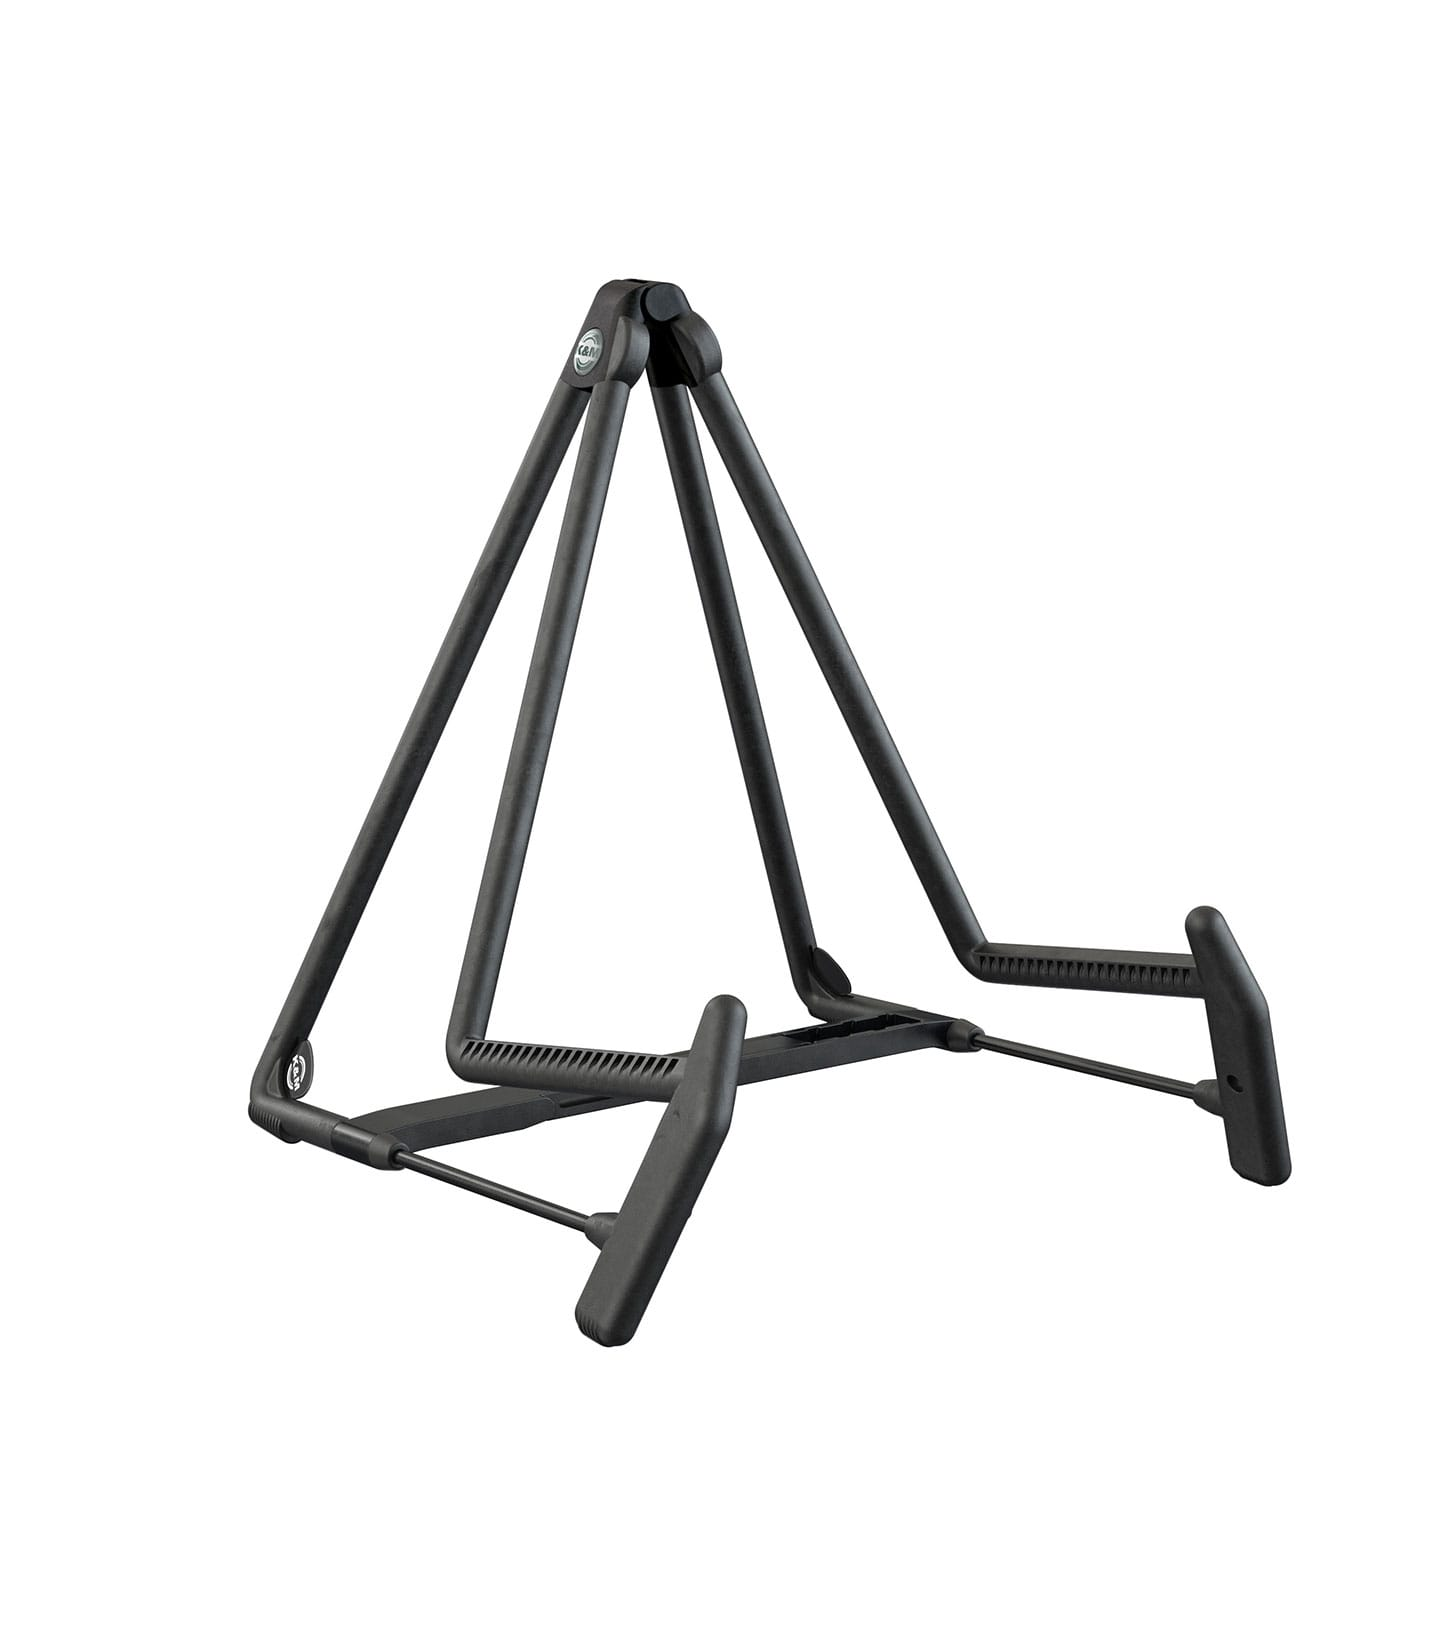 K&M - 17580 014 55 Guitar Stand Black Color